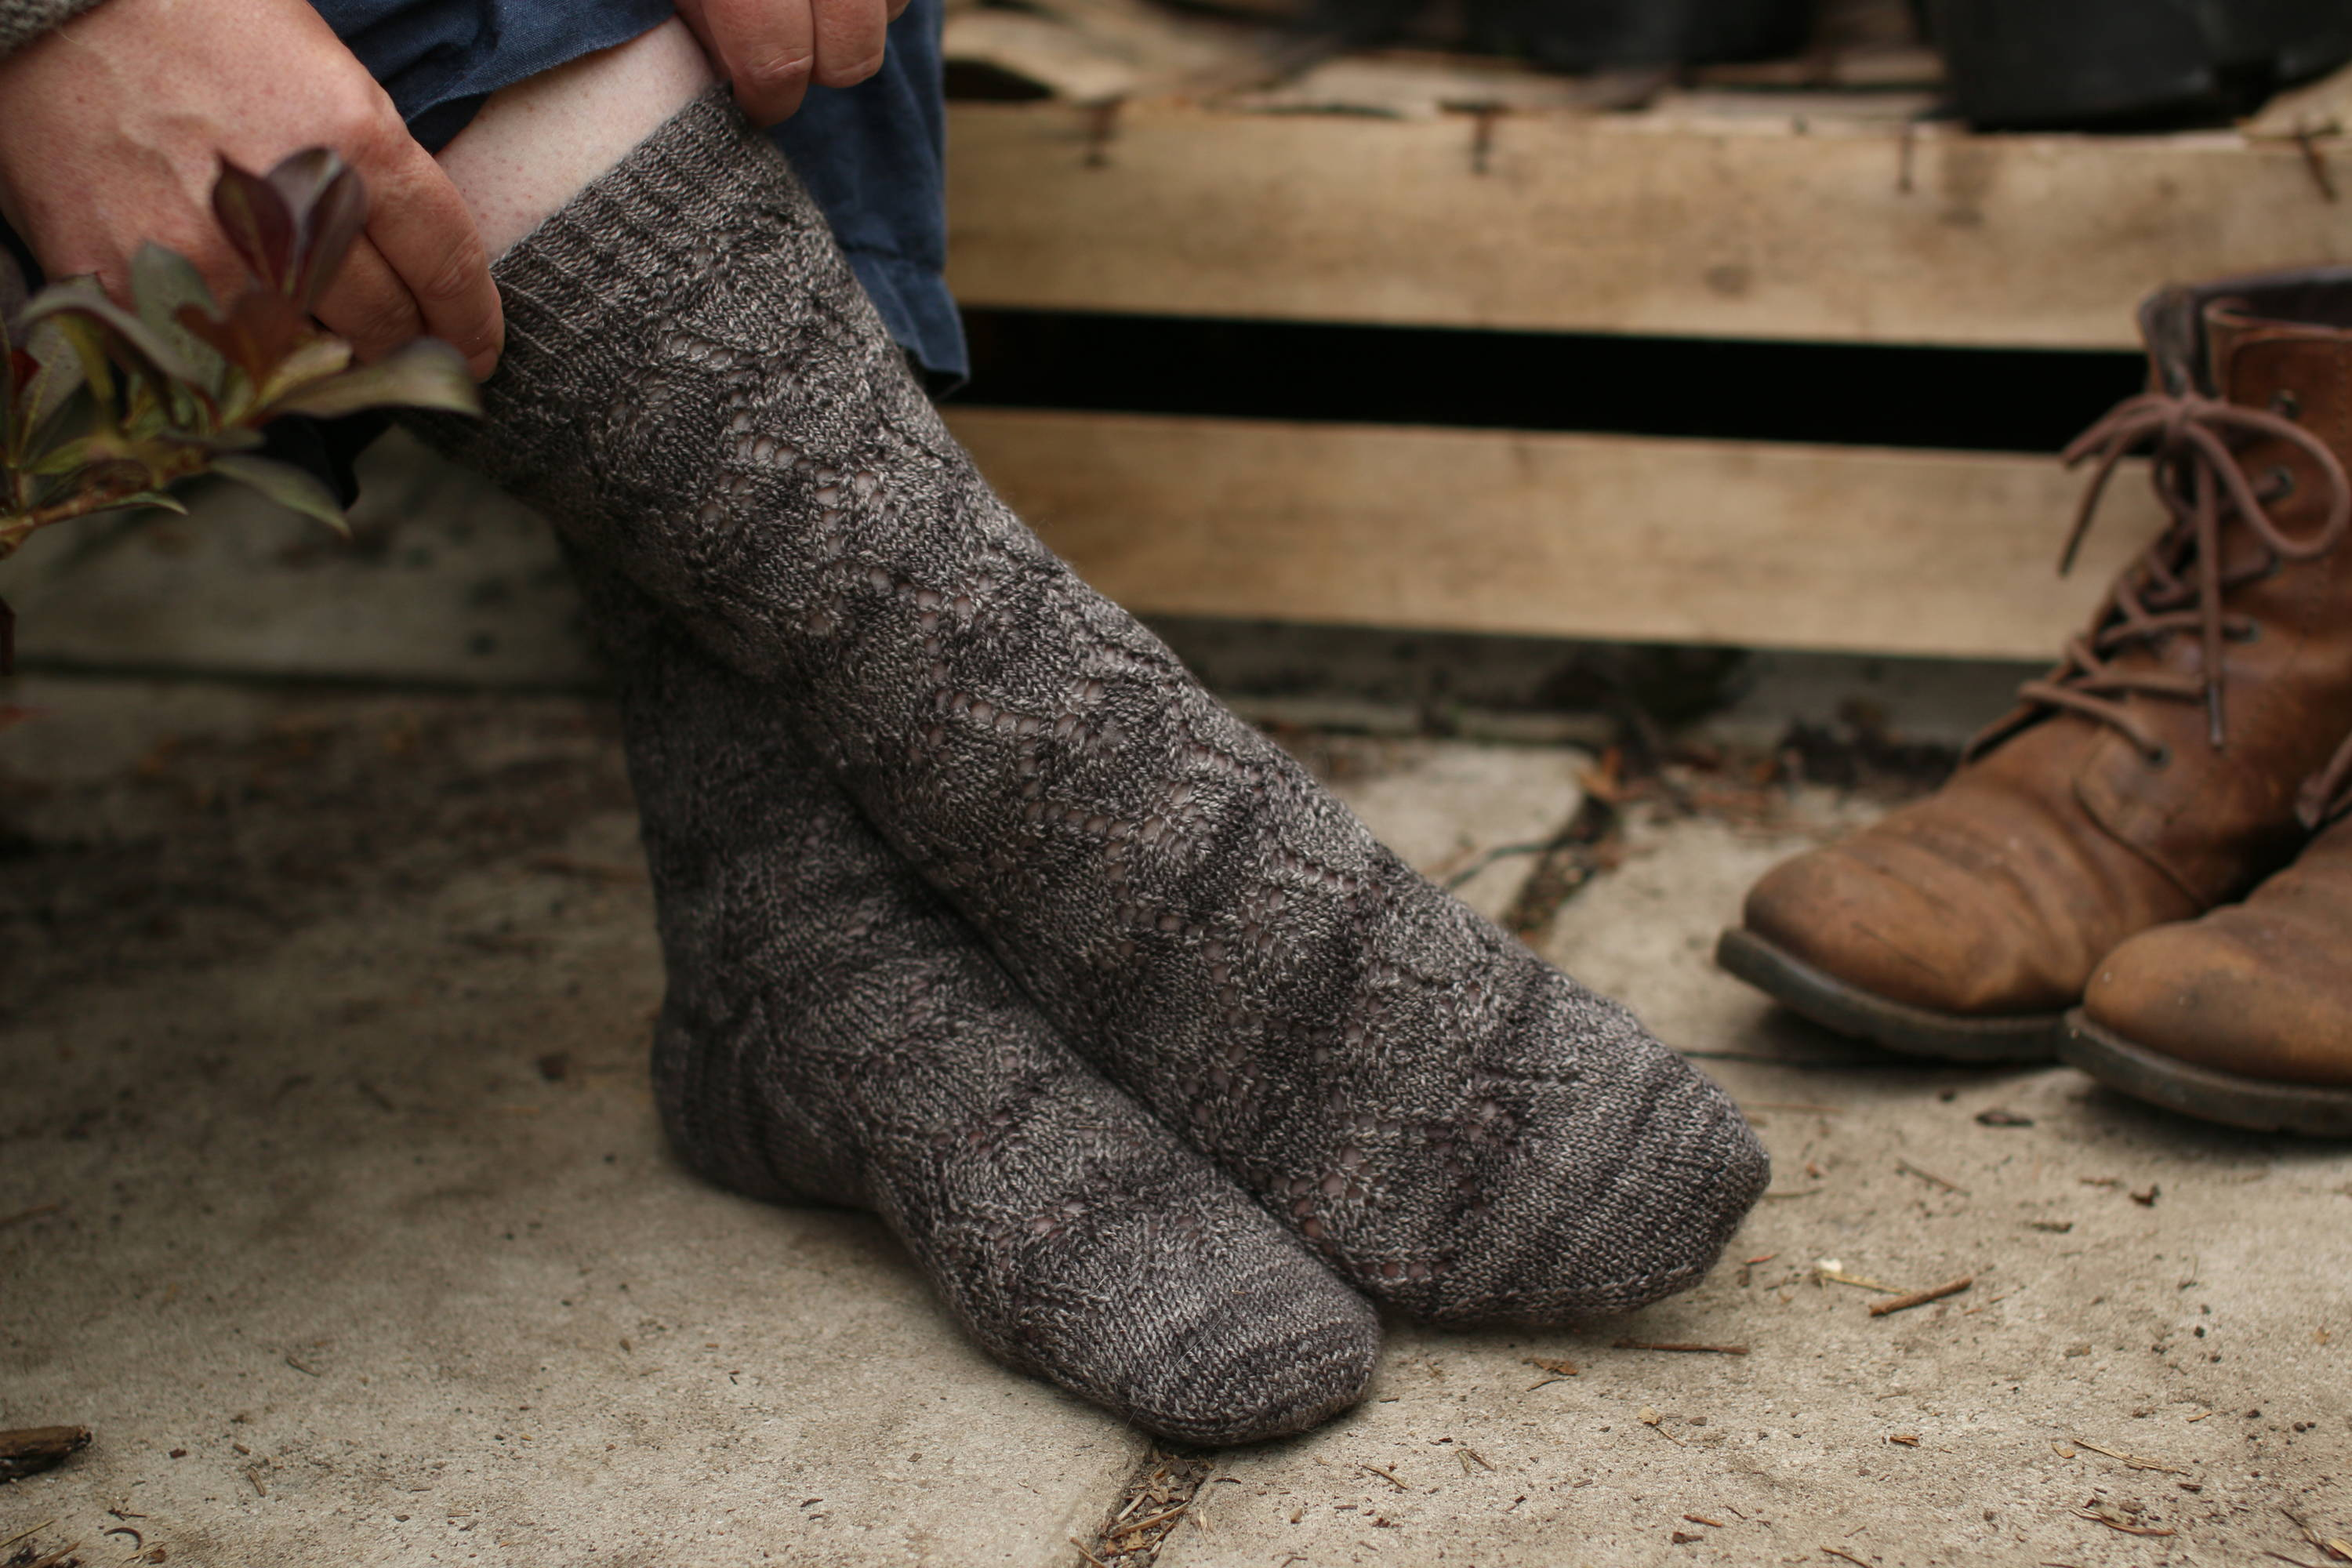 A pair of feet crossed one over the other wearing a pair of dark grey socks